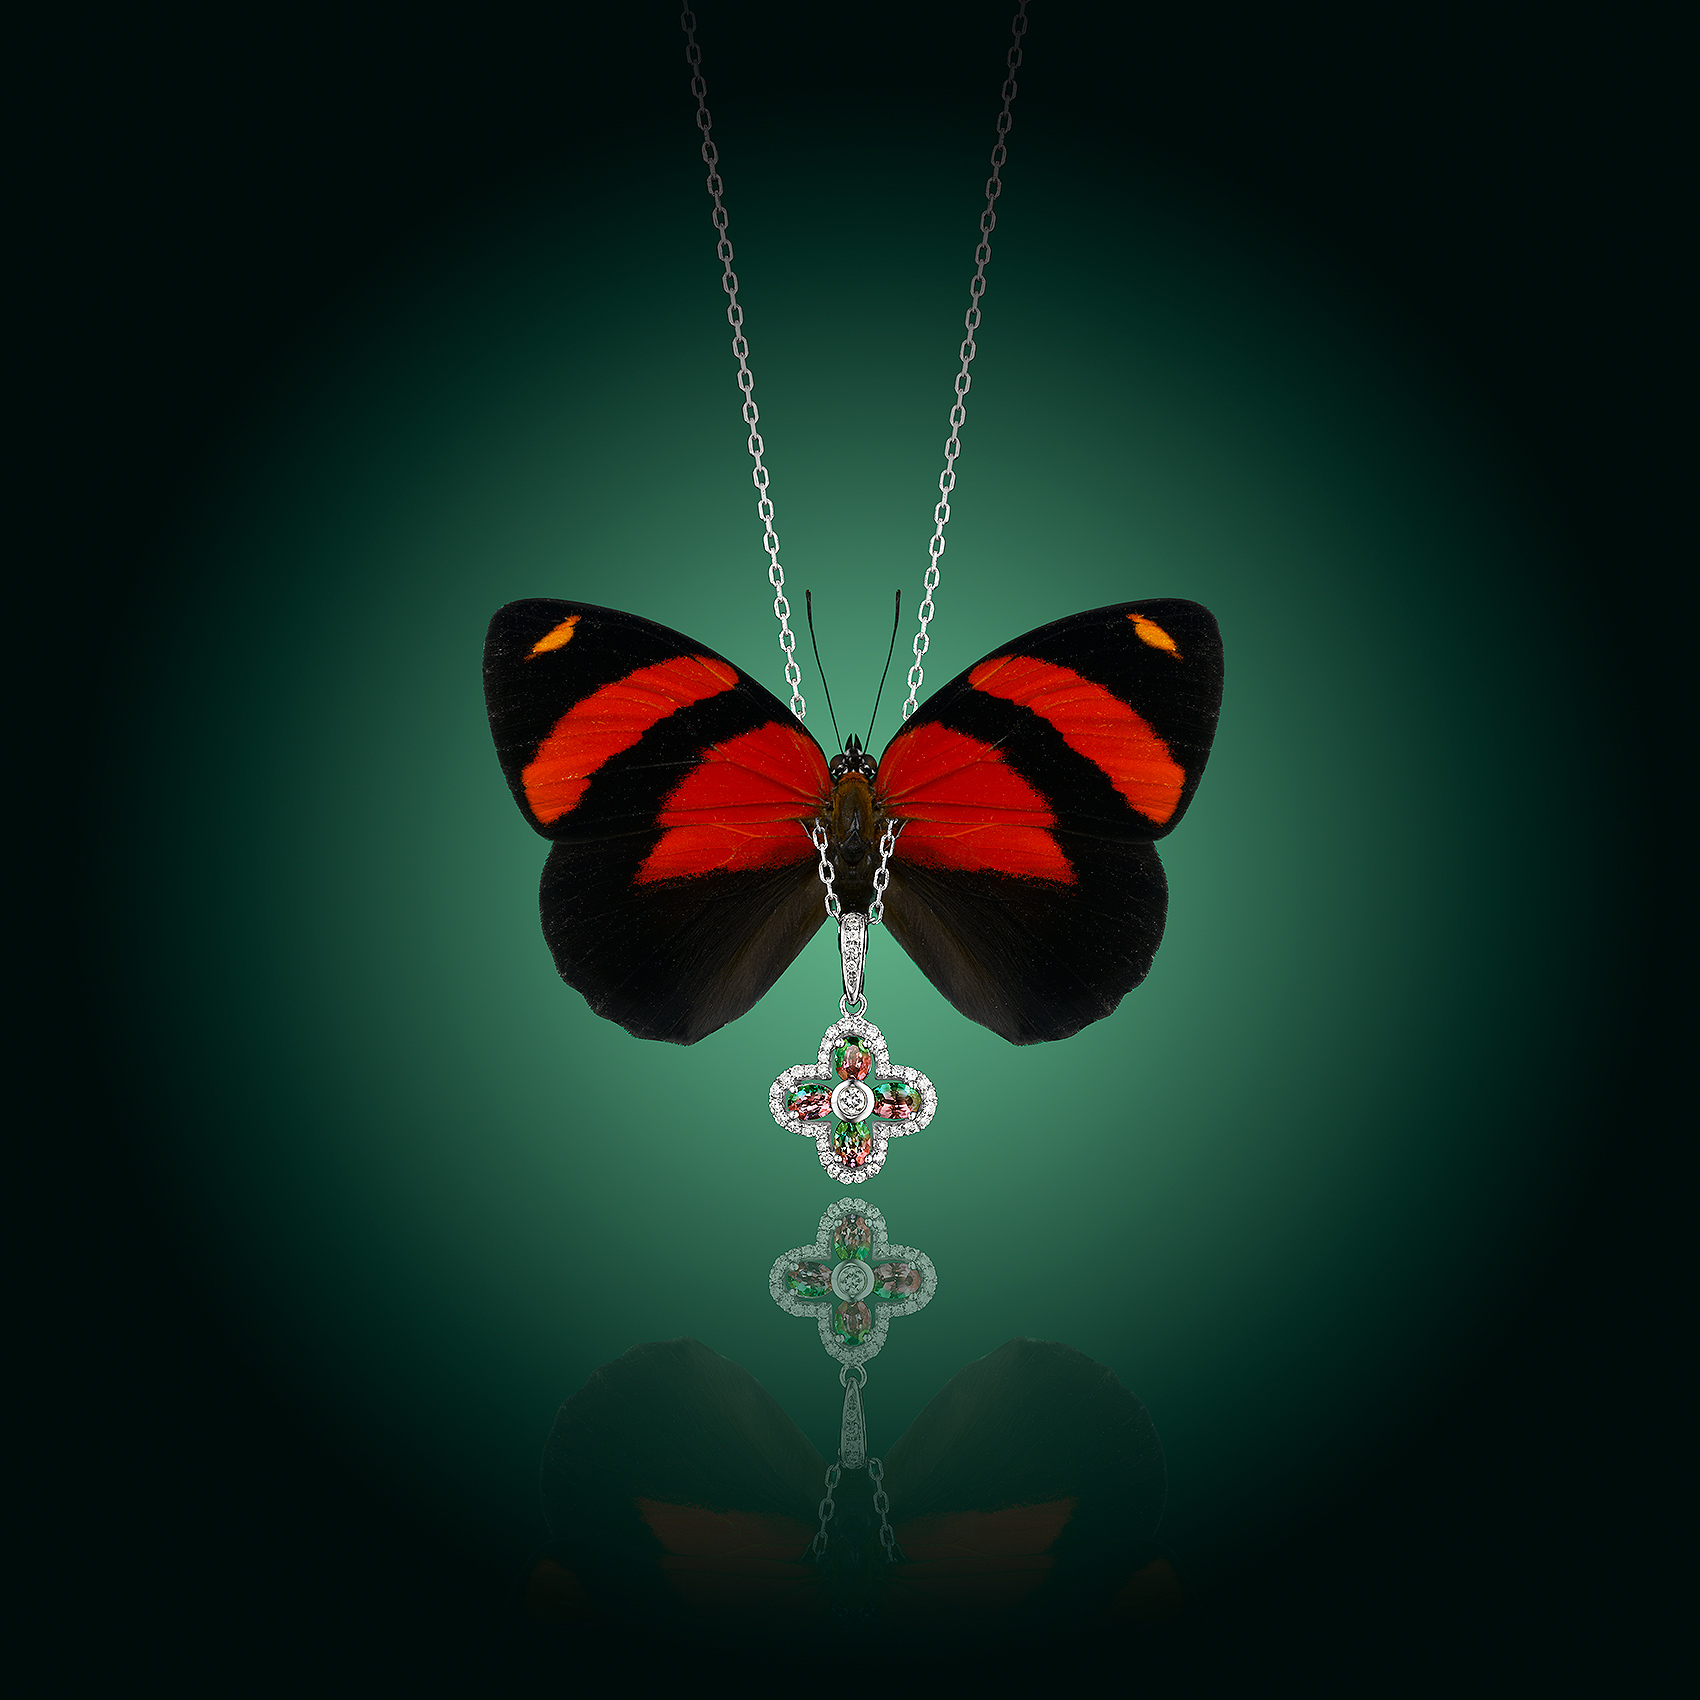 Jewelry with Butterfly